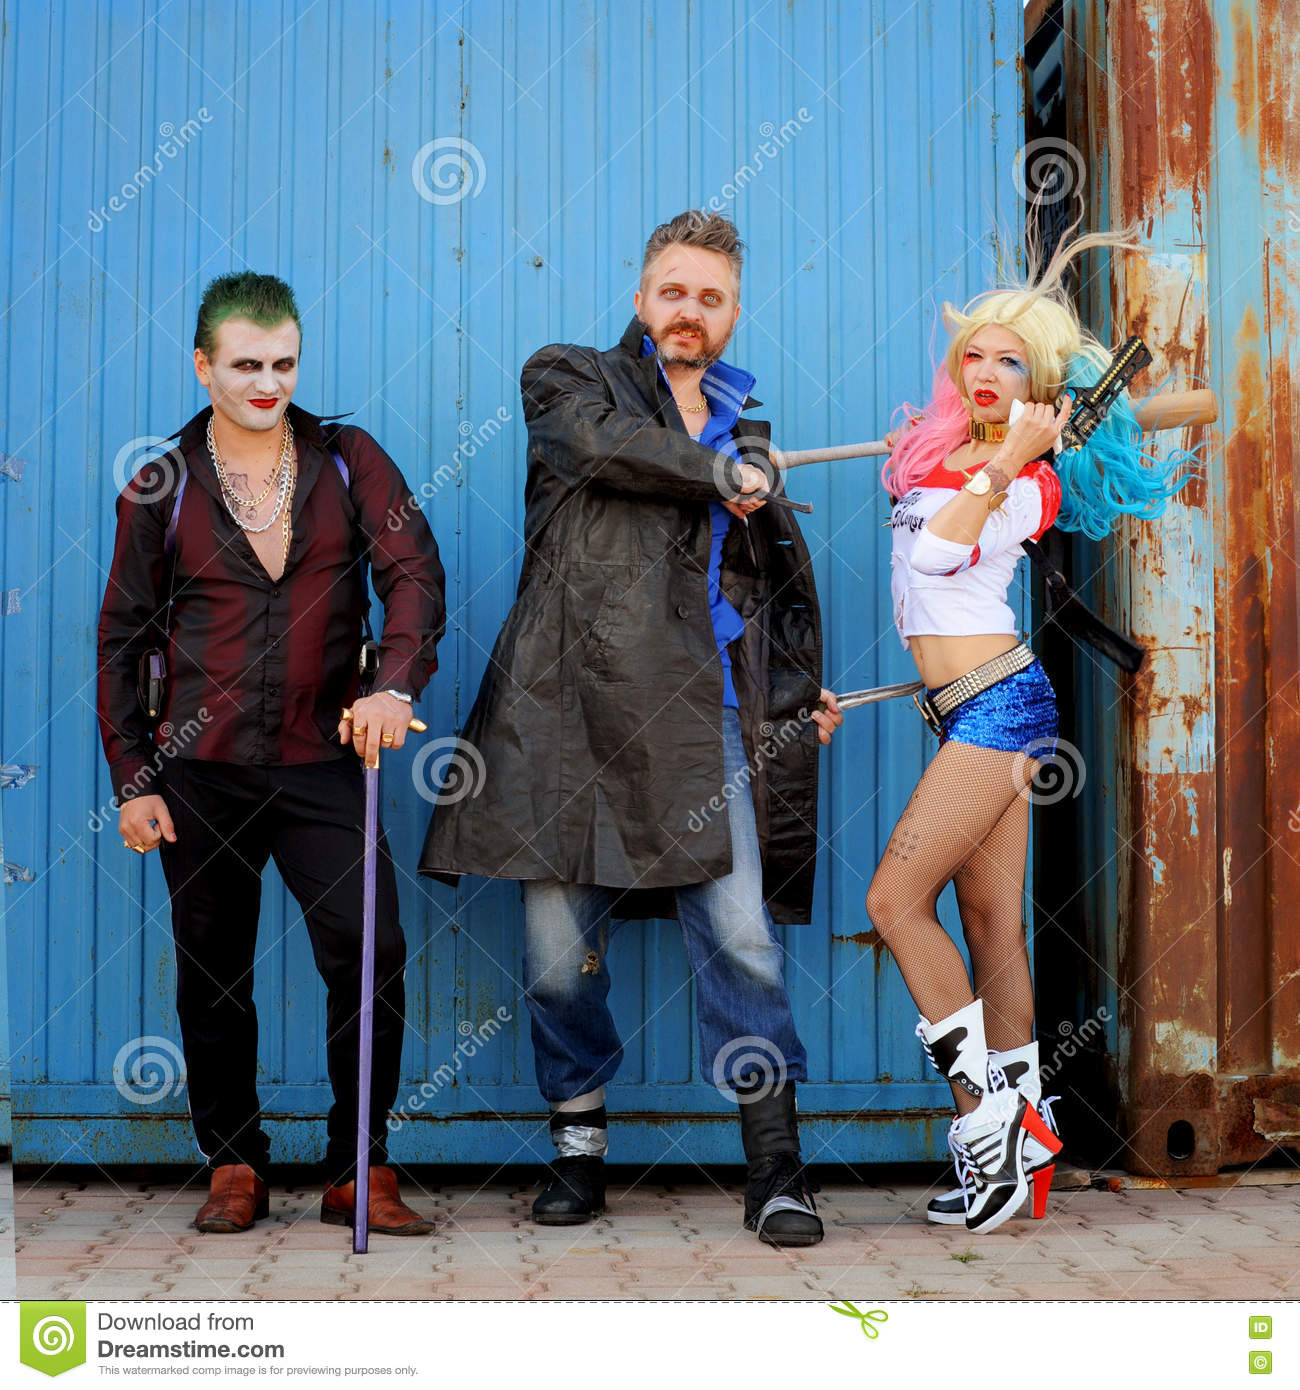 Cosplayer girl in Harley Quinn costume and cosplayer men in Joker and Boomerang Editorial Photo